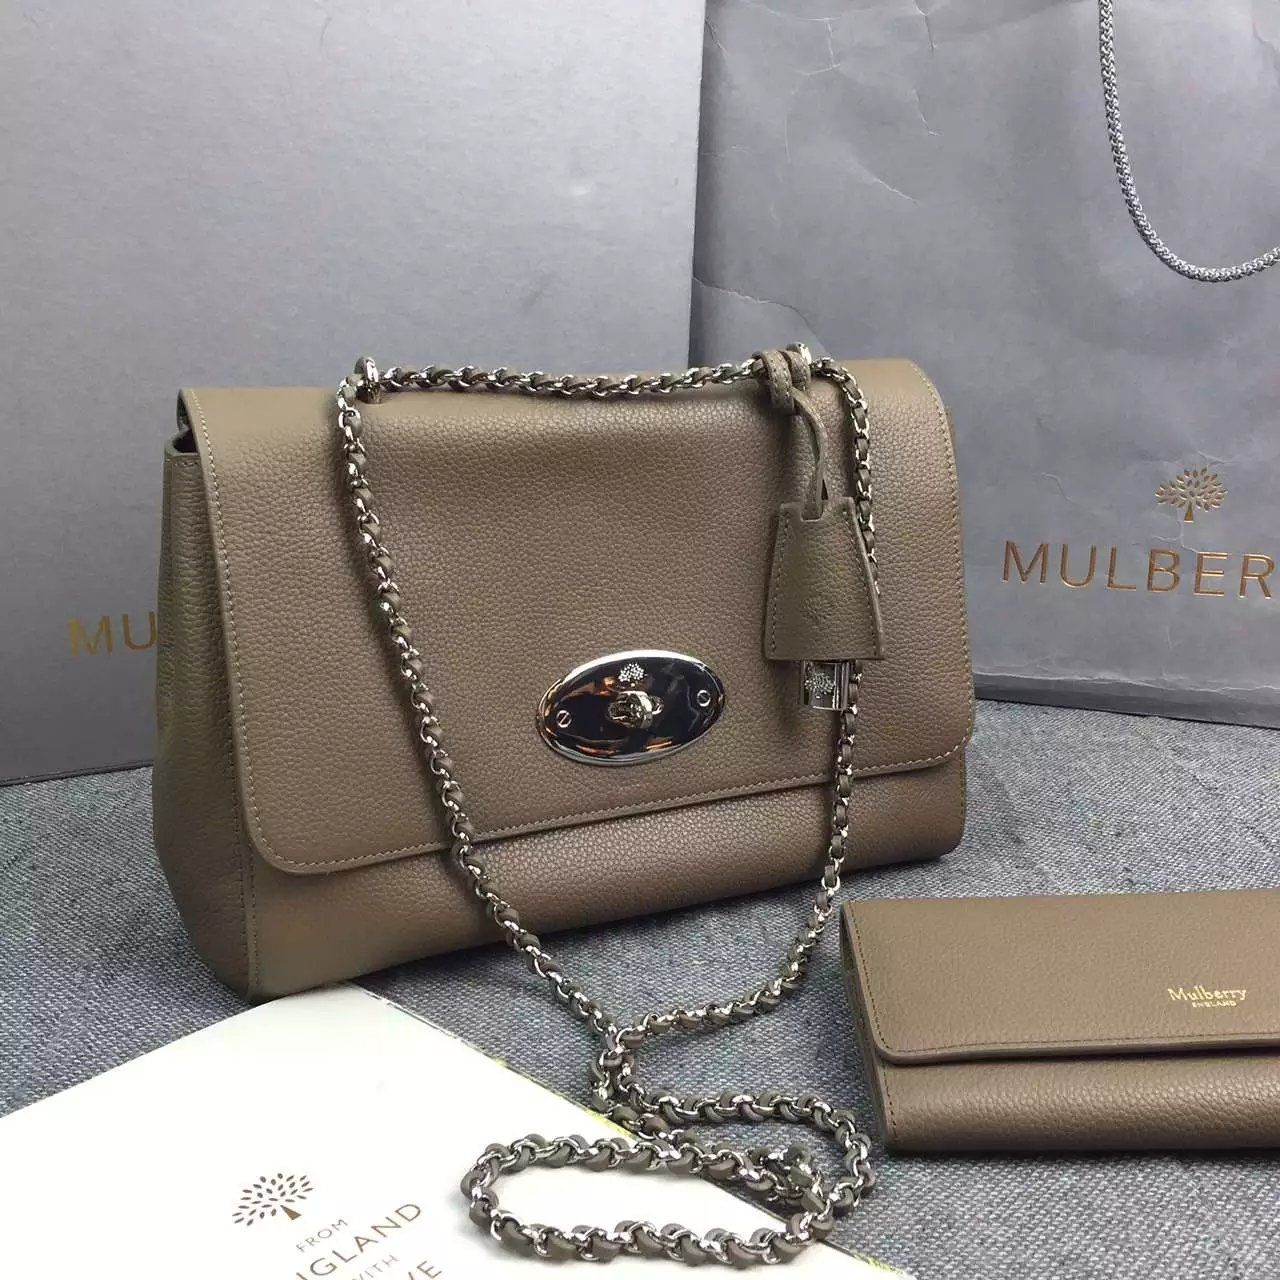 Spring Mulberry 2016 Lily Bags Outlet UK-Mulberry Medium Lily Black Small  Classic Grain. 2016 Fall Winter ... 8fdbe7c5ba9be